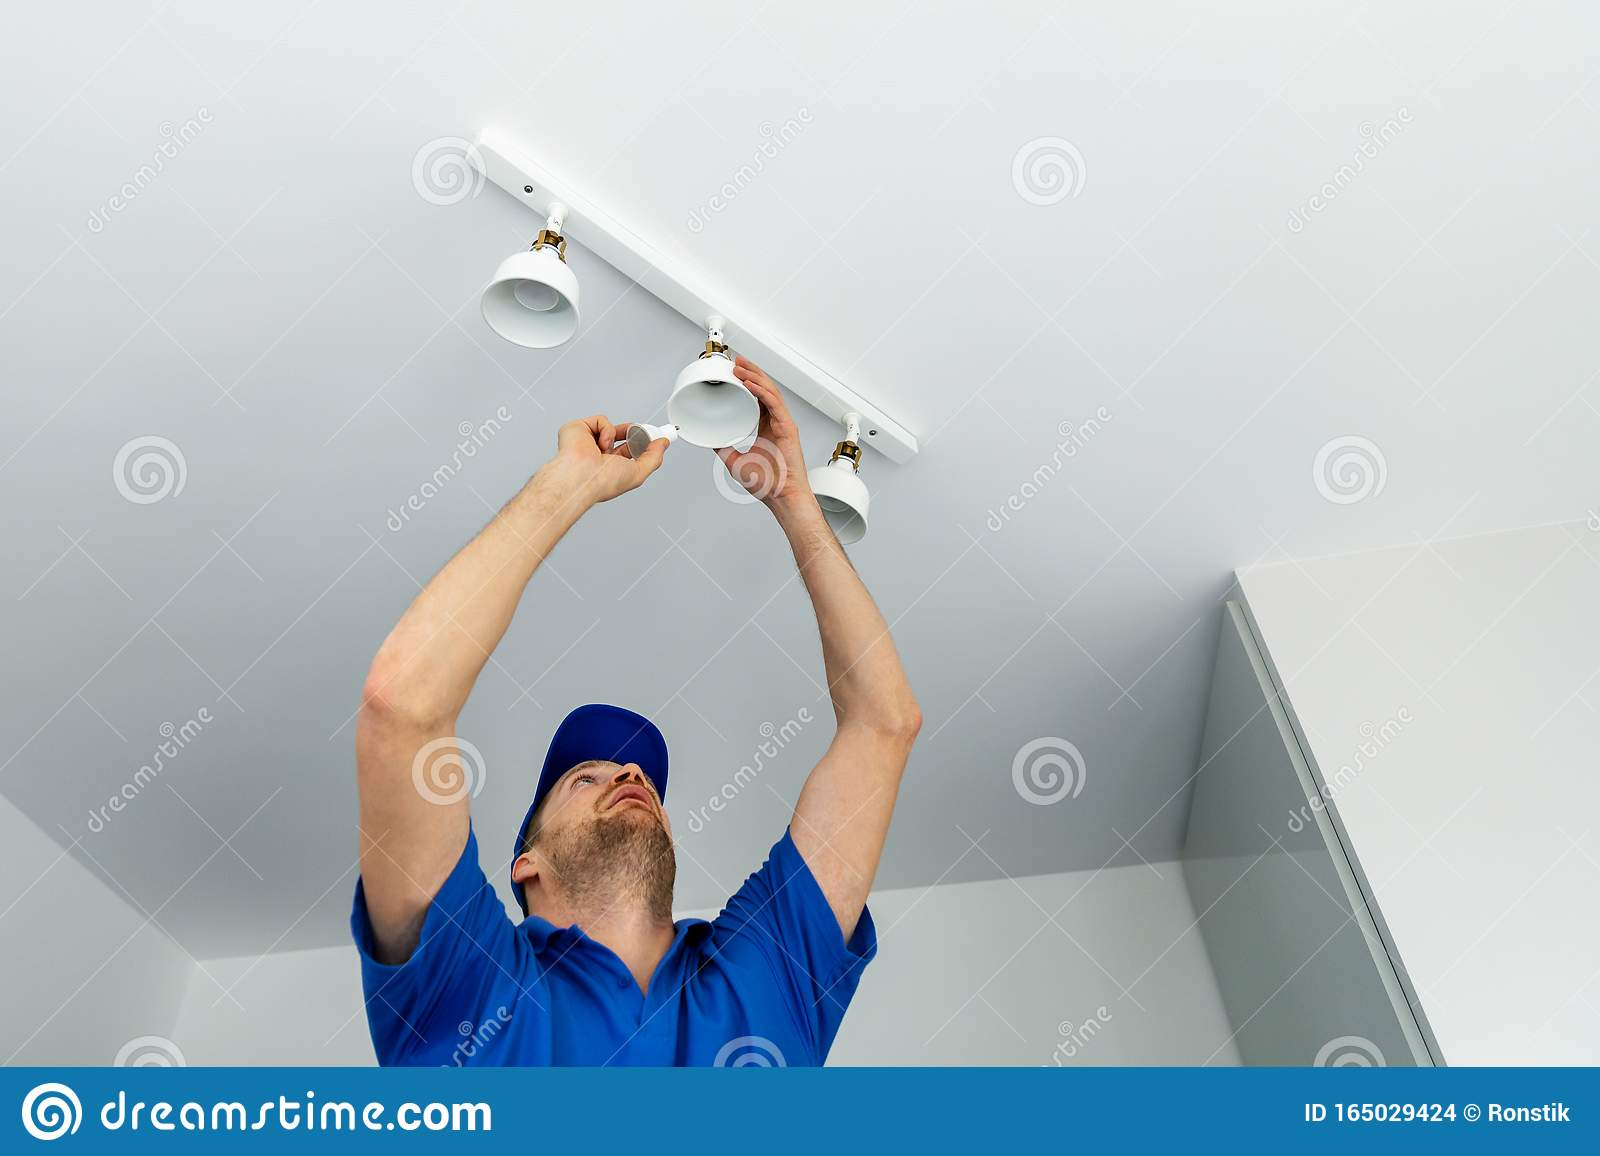 Electrician Installing Led Light Bulbs In Ceiling Lamp Stock Photo Image Of Equipment Occupation 165029424